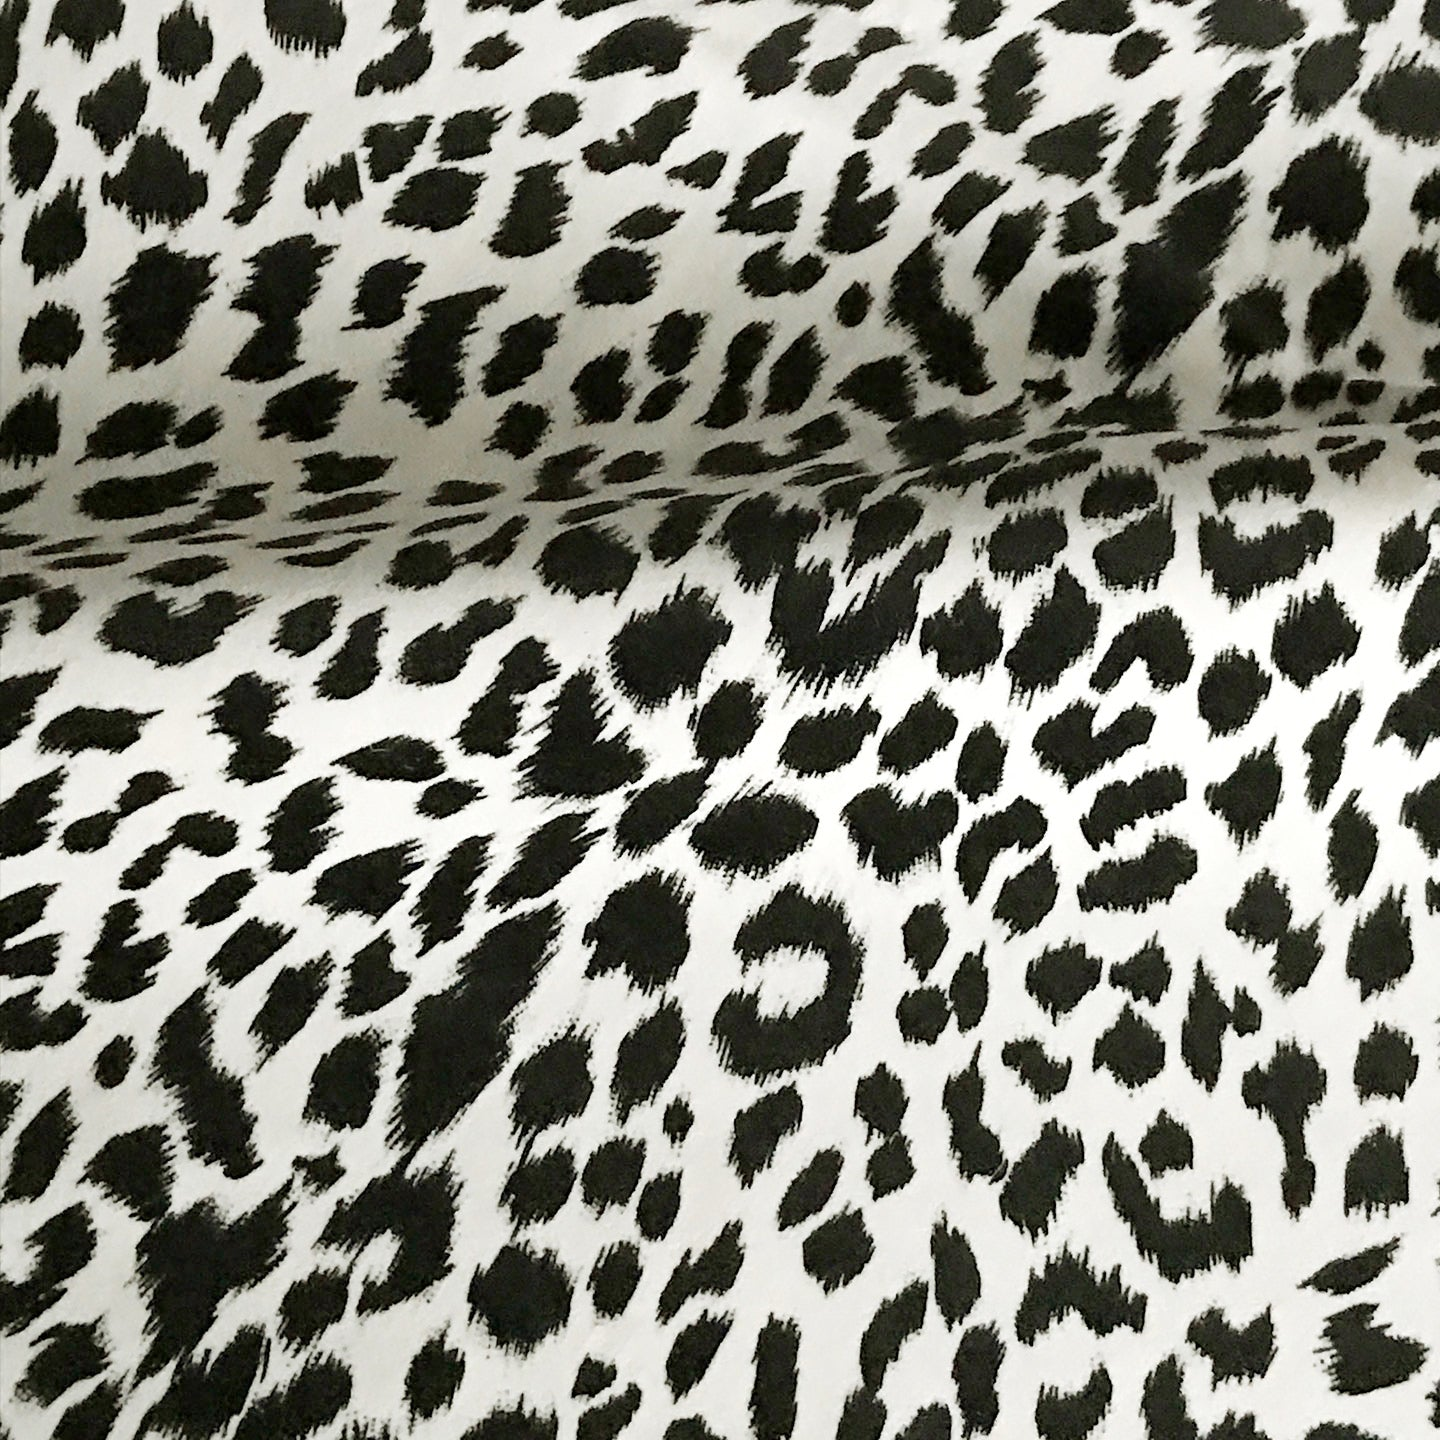 Cheetah Print Black White Velvet Upholstery Fabric Plankroad Home